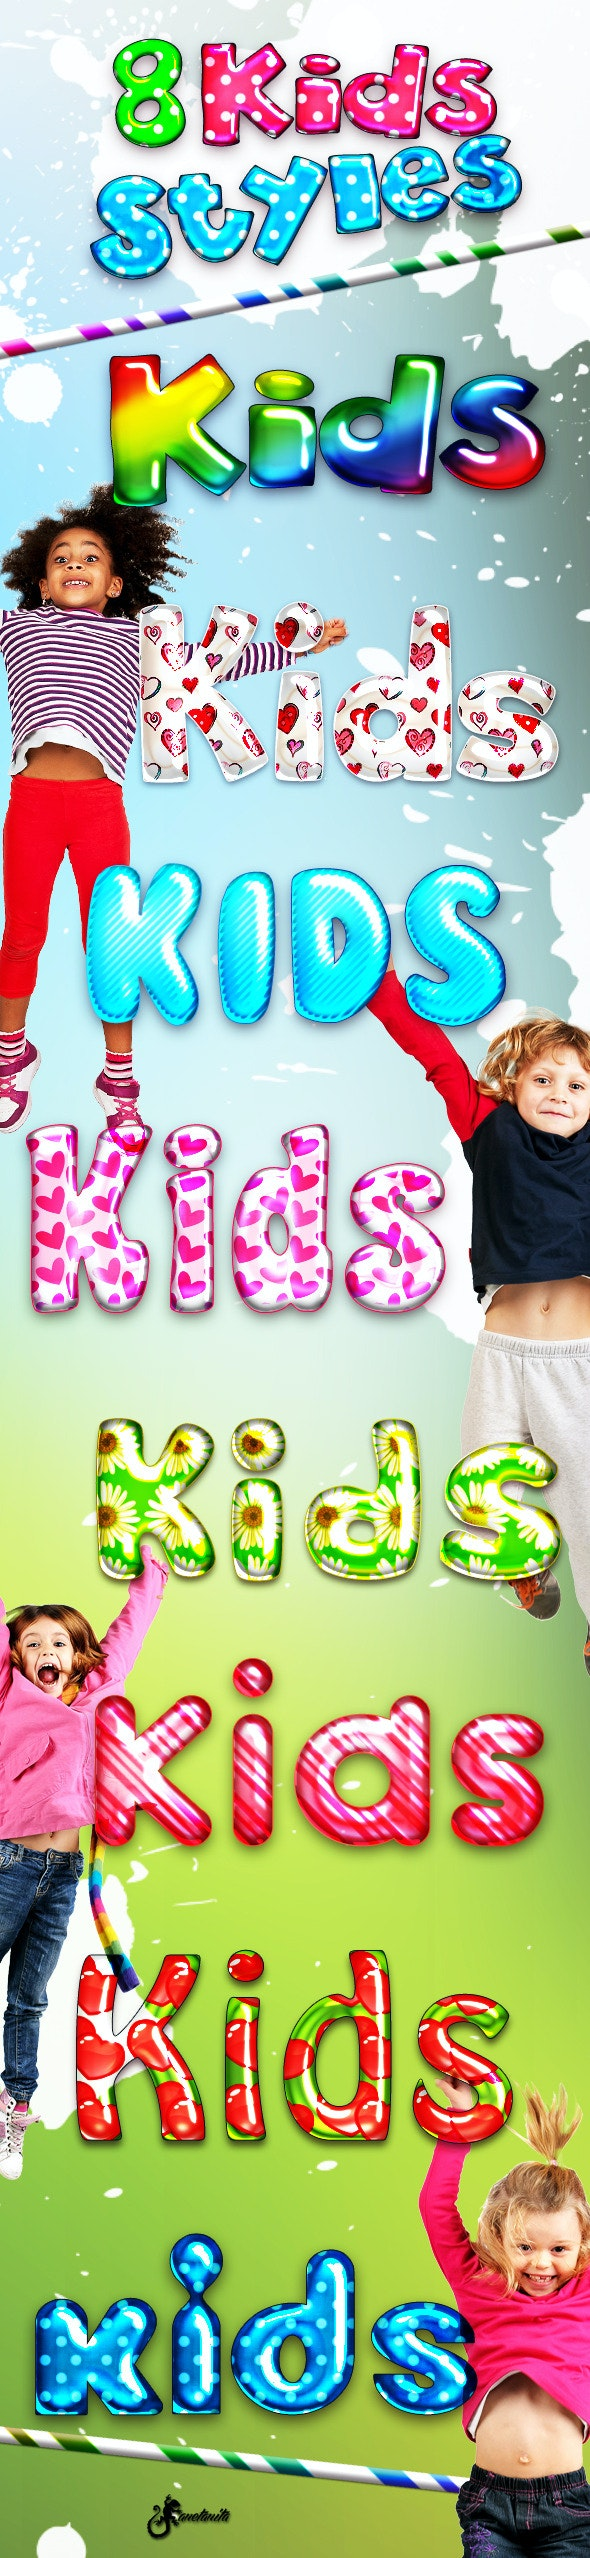 Kids Styles - Text Effects Styles